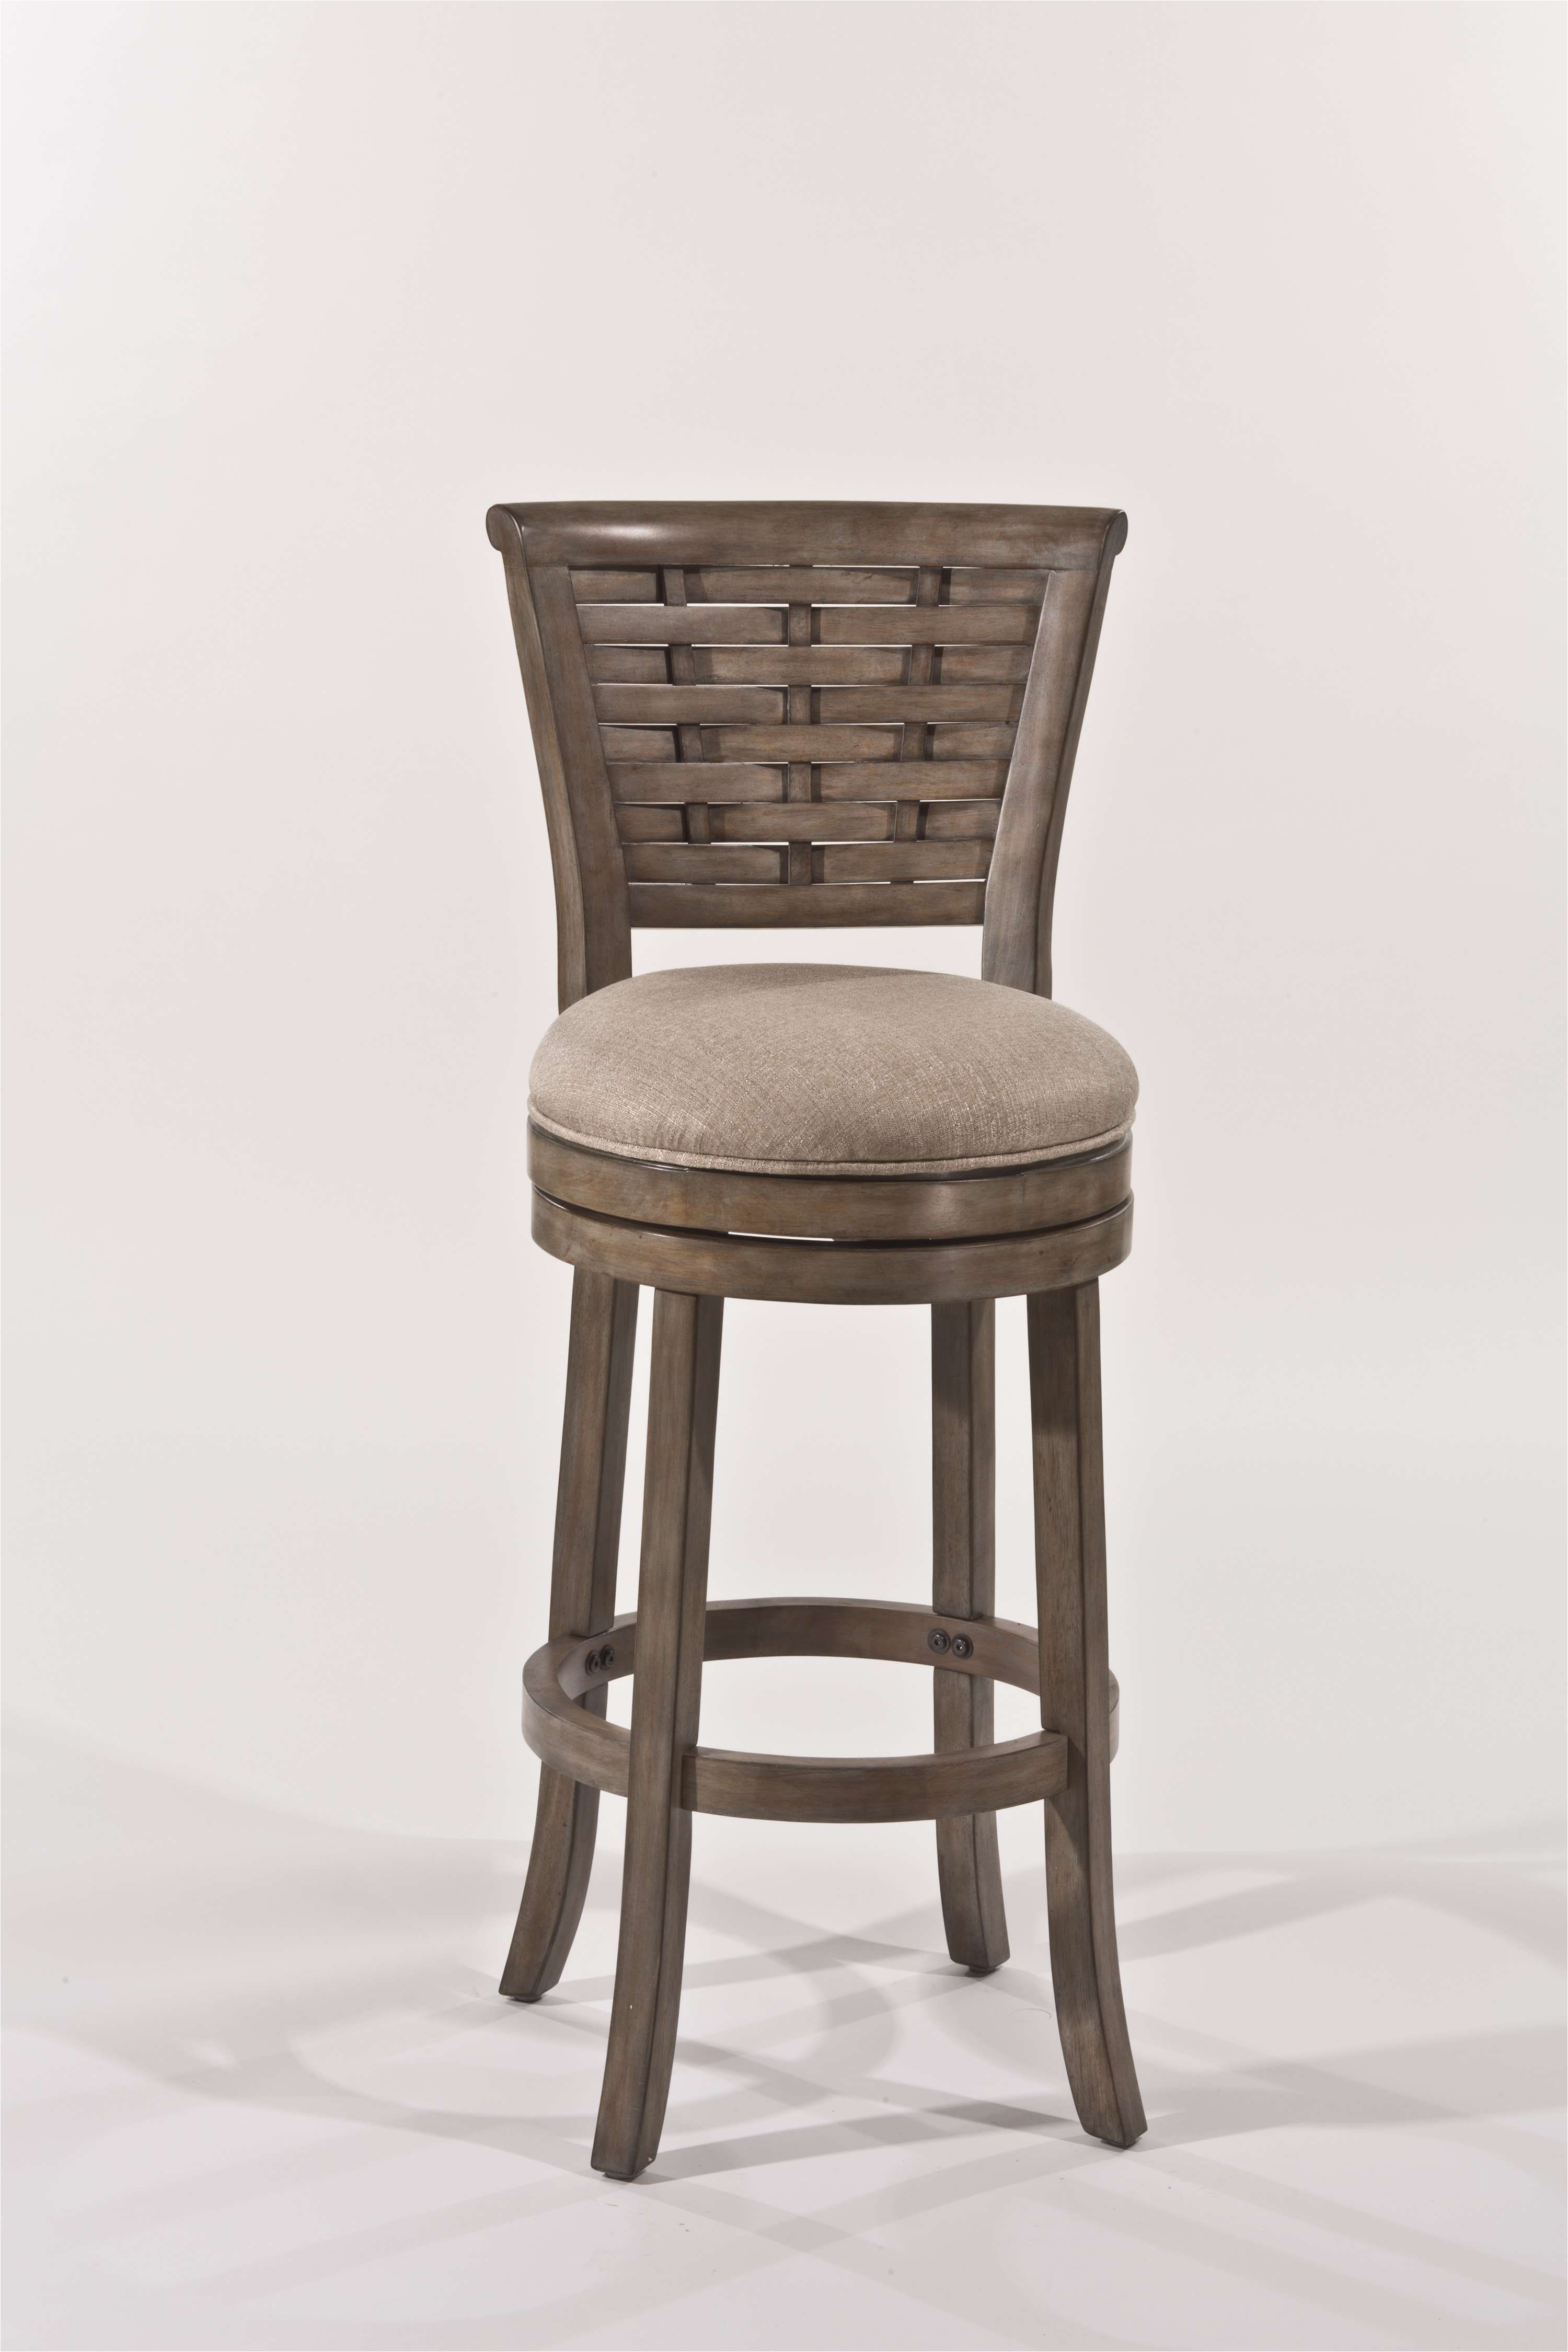 thredson putty leatherette swivel bar stool in light antique graywash finish